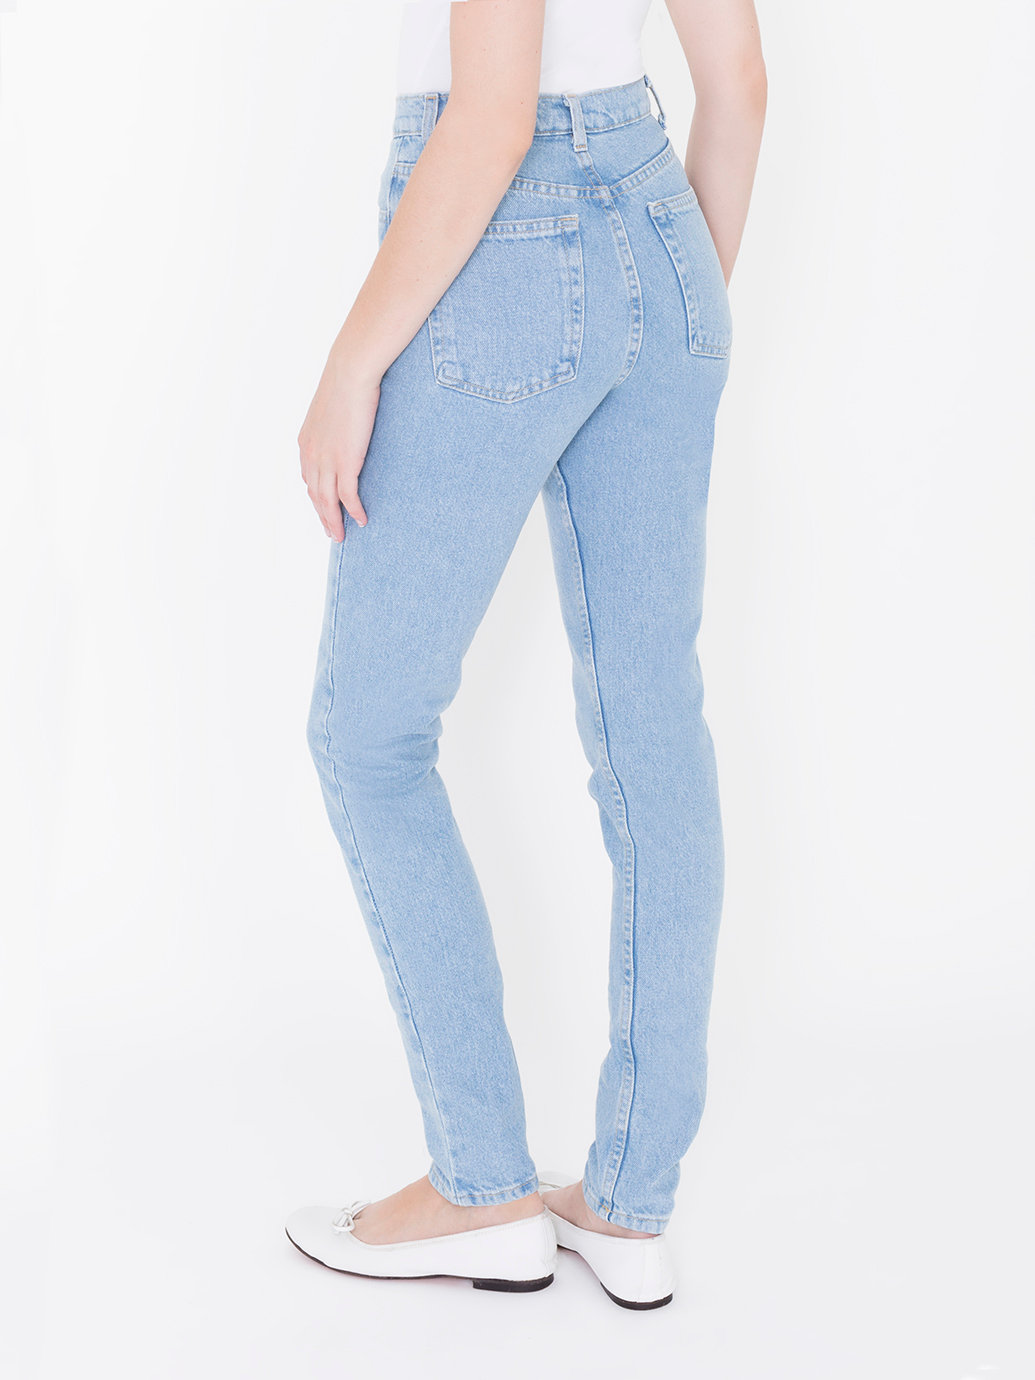 These stretch jeans for women feature a high waist and deep, dark wash coloring. Pair with an oversized tee shirt or button down for a versatile look. Shop Aeropostale jeggings for women in a variety of fits and styles online. Aeropostale.